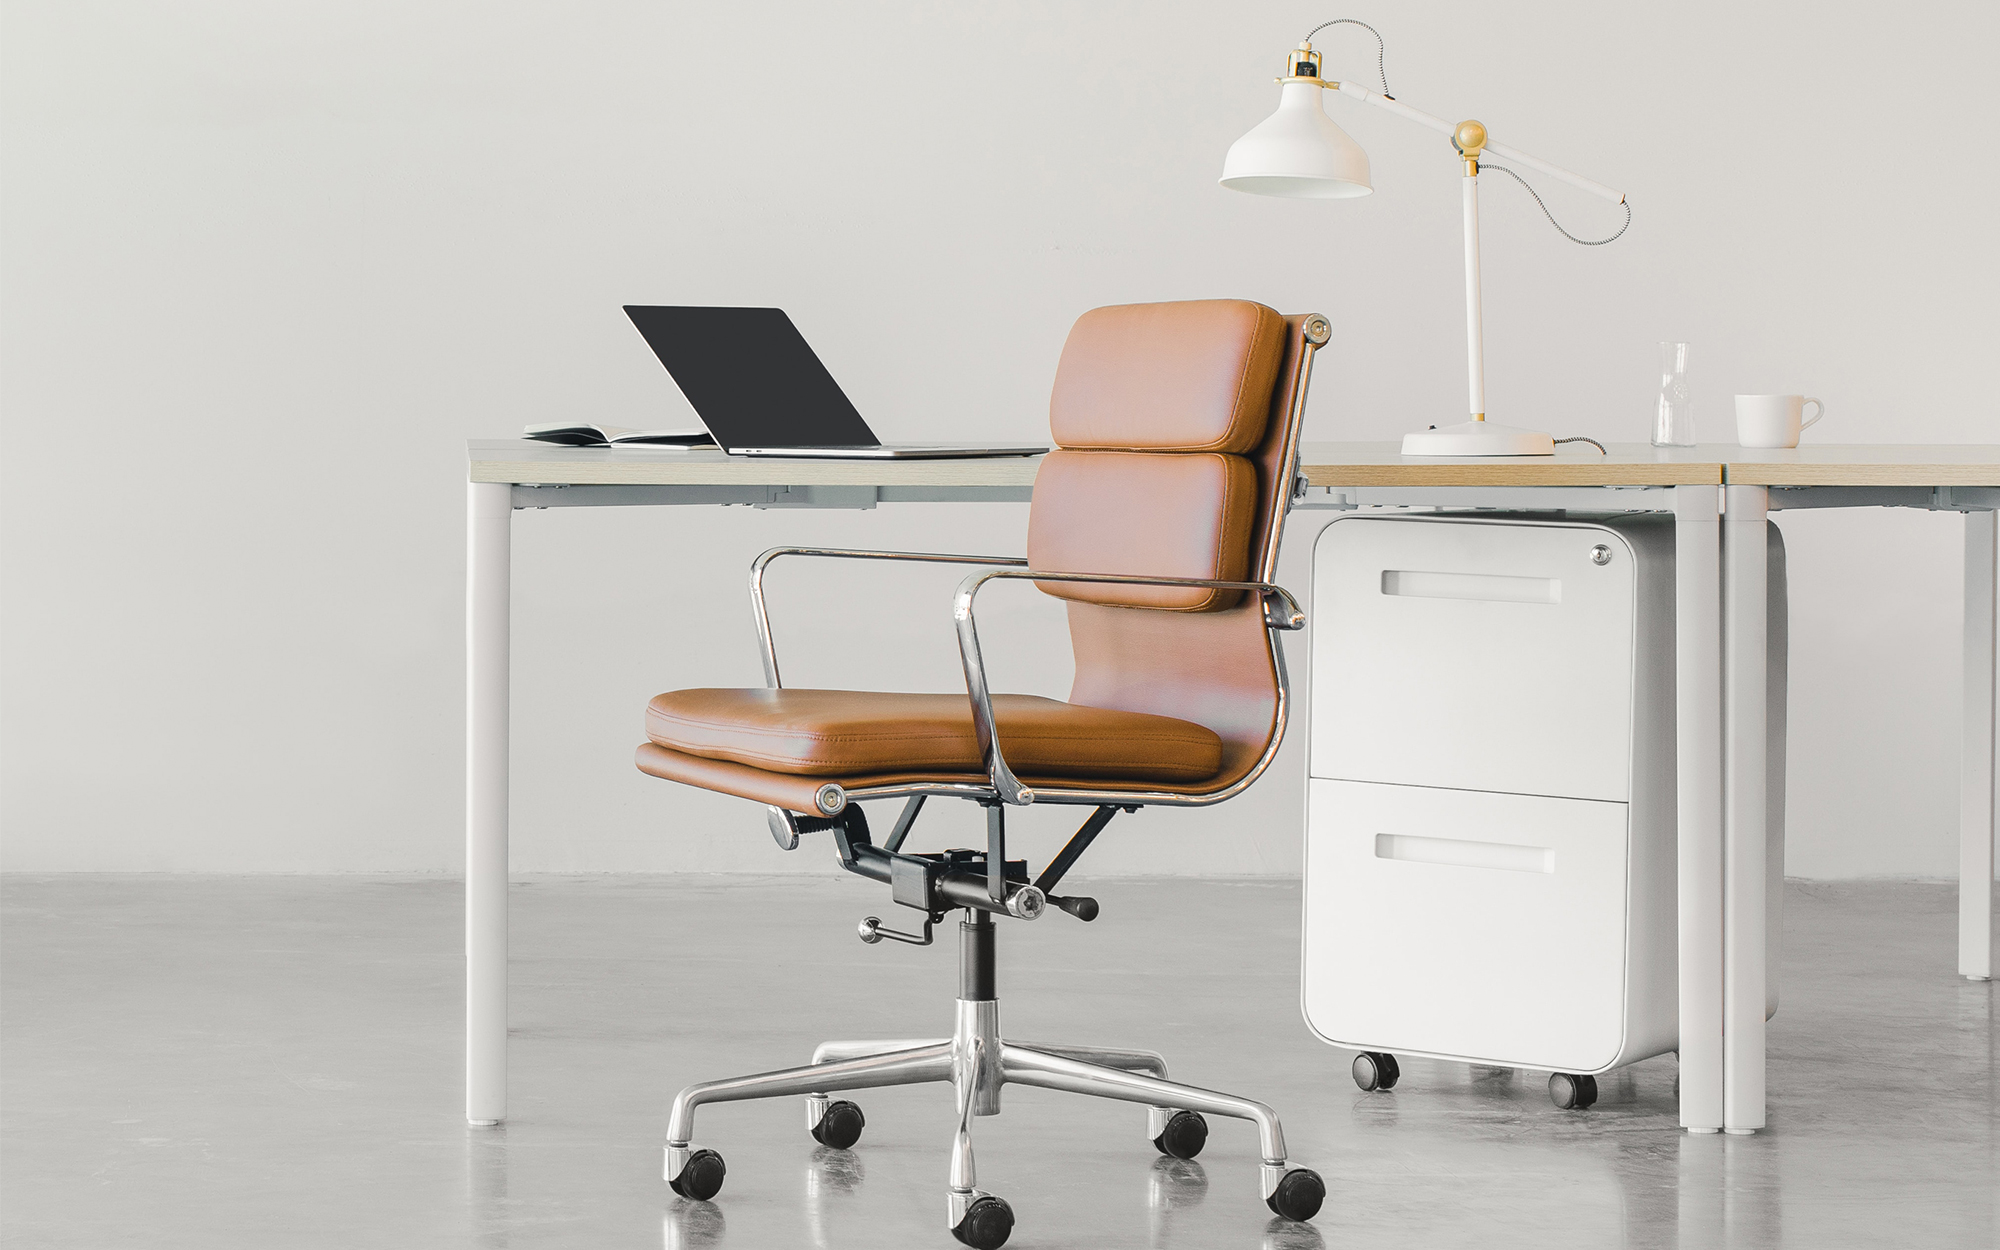 Eames EA217 In A Bland Office Space